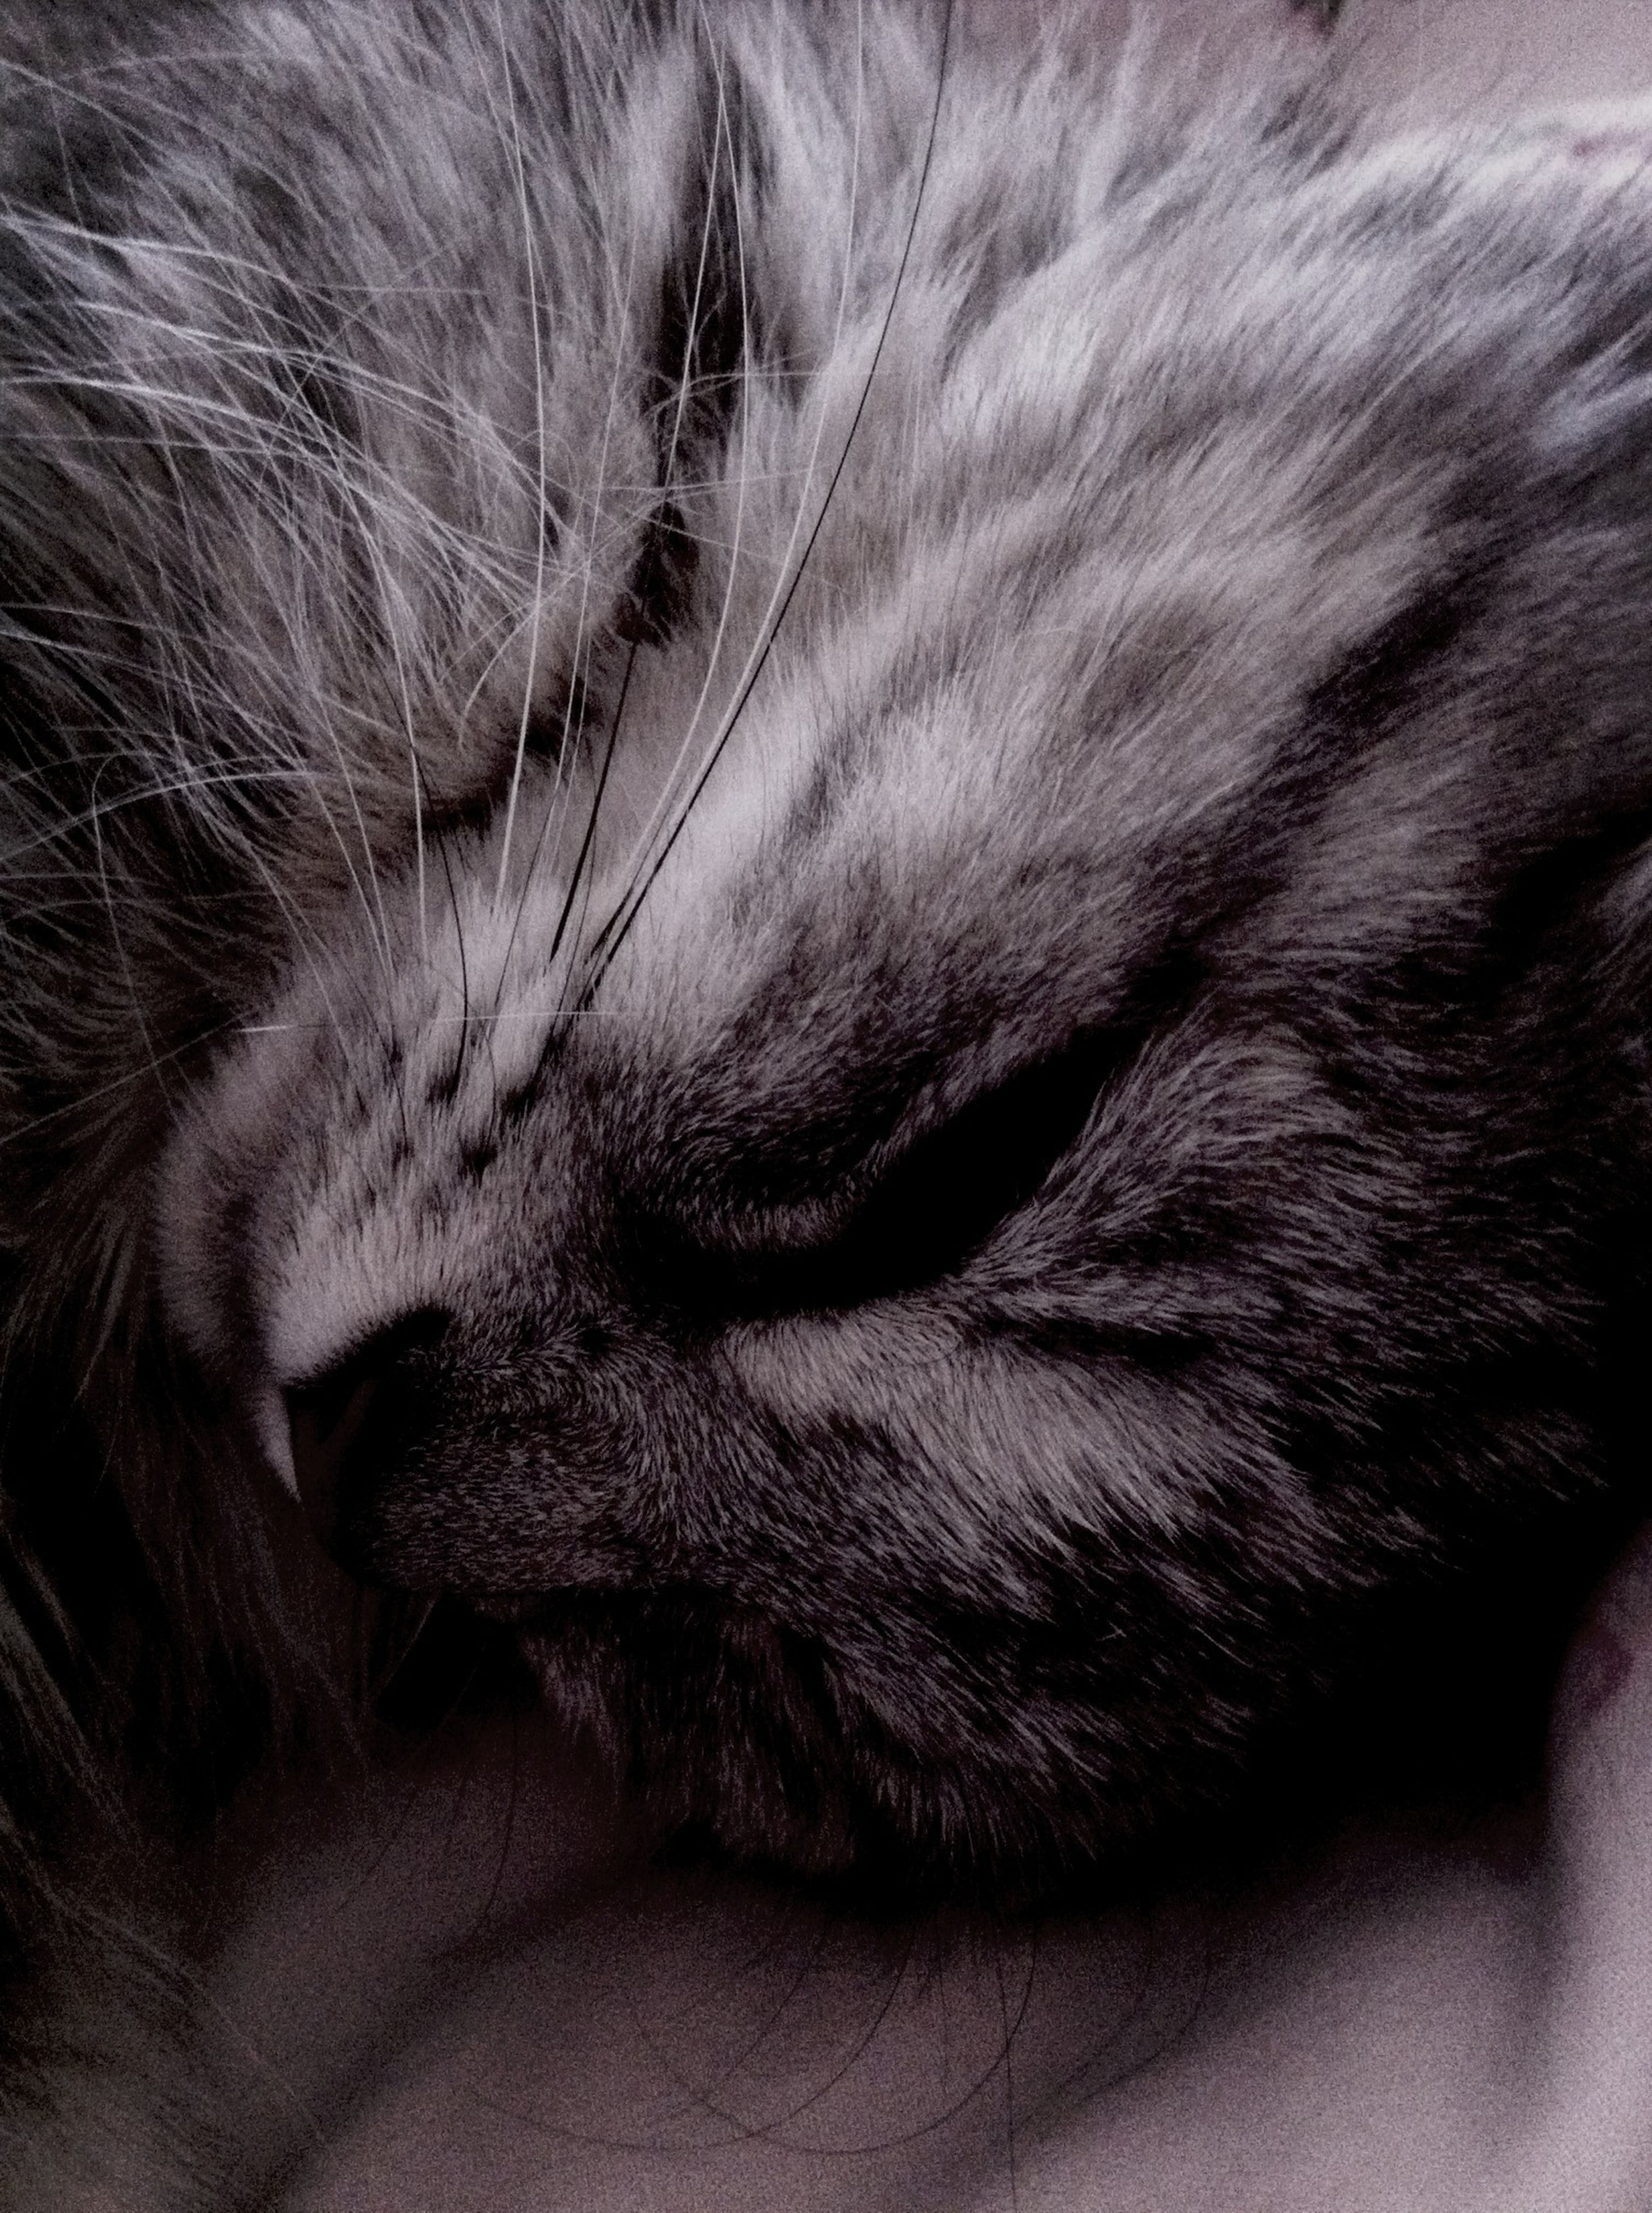 domestic animals, pets, one animal, animal themes, mammal, domestic cat, cat, indoors, feline, relaxation, sleeping, whisker, close-up, resting, animal head, animal body part, lying down, eyes closed, bed, part of